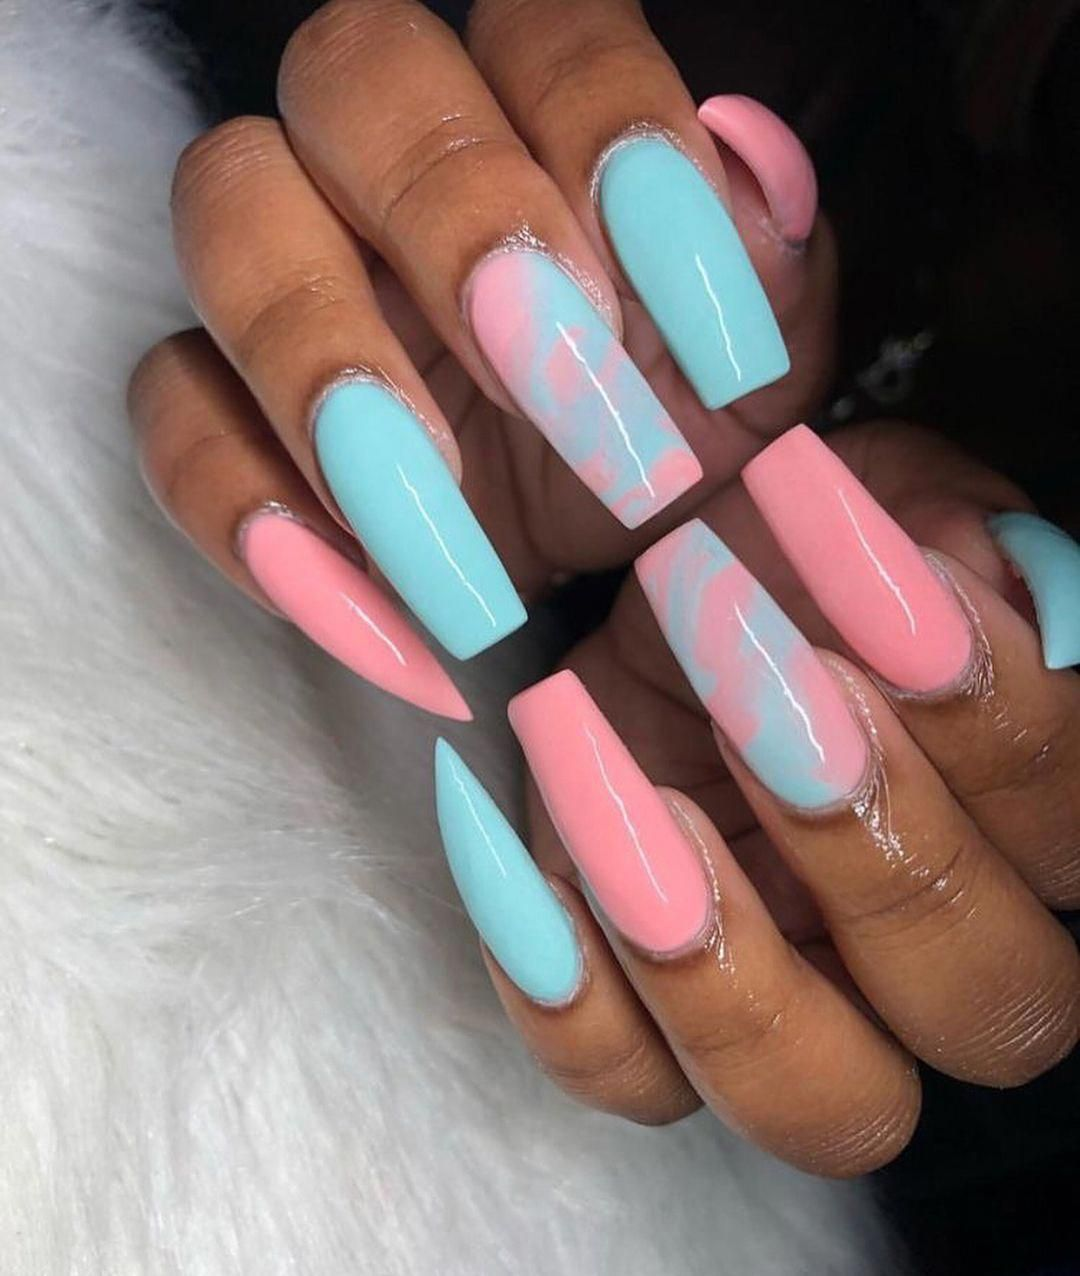 10 Cotton Candy Nails Ideas To Copy - Inspired Beauty